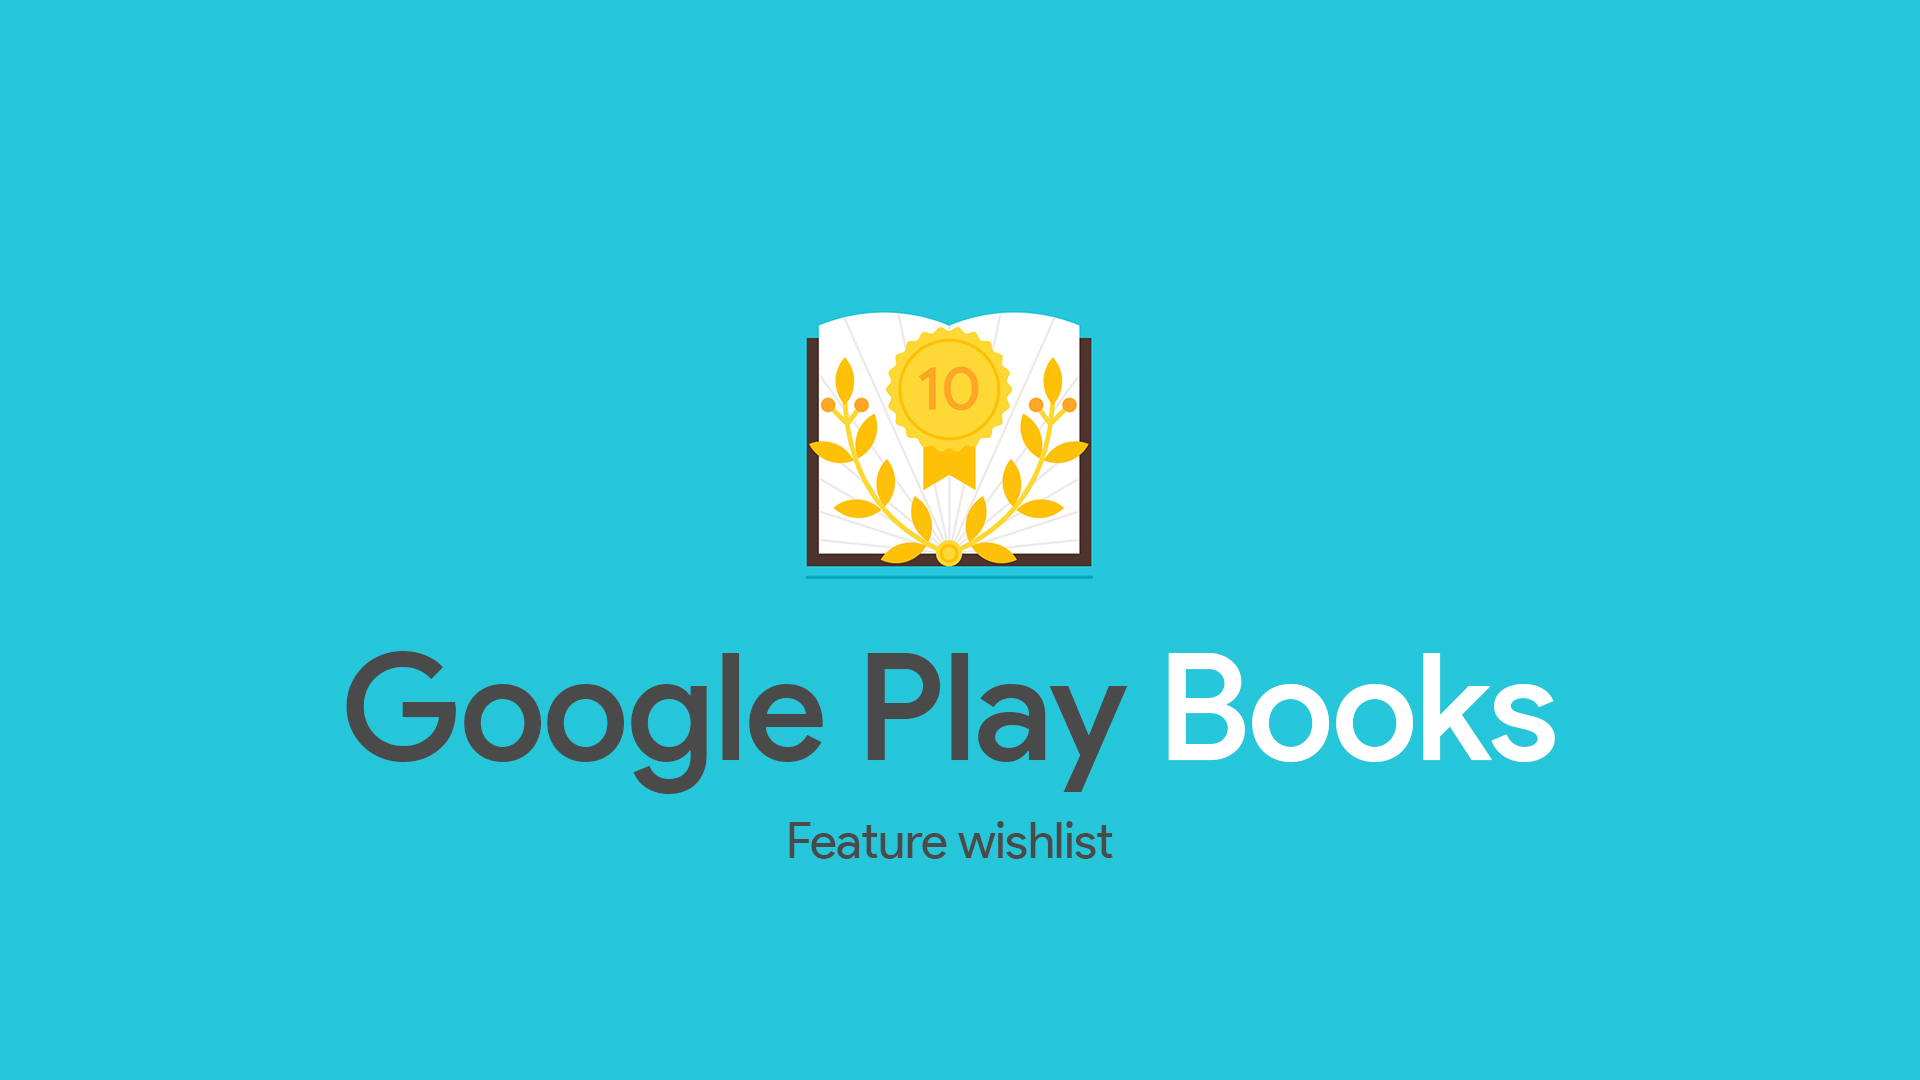 As Google Play Books turns 10 years old, here is our feature wishlist for the future